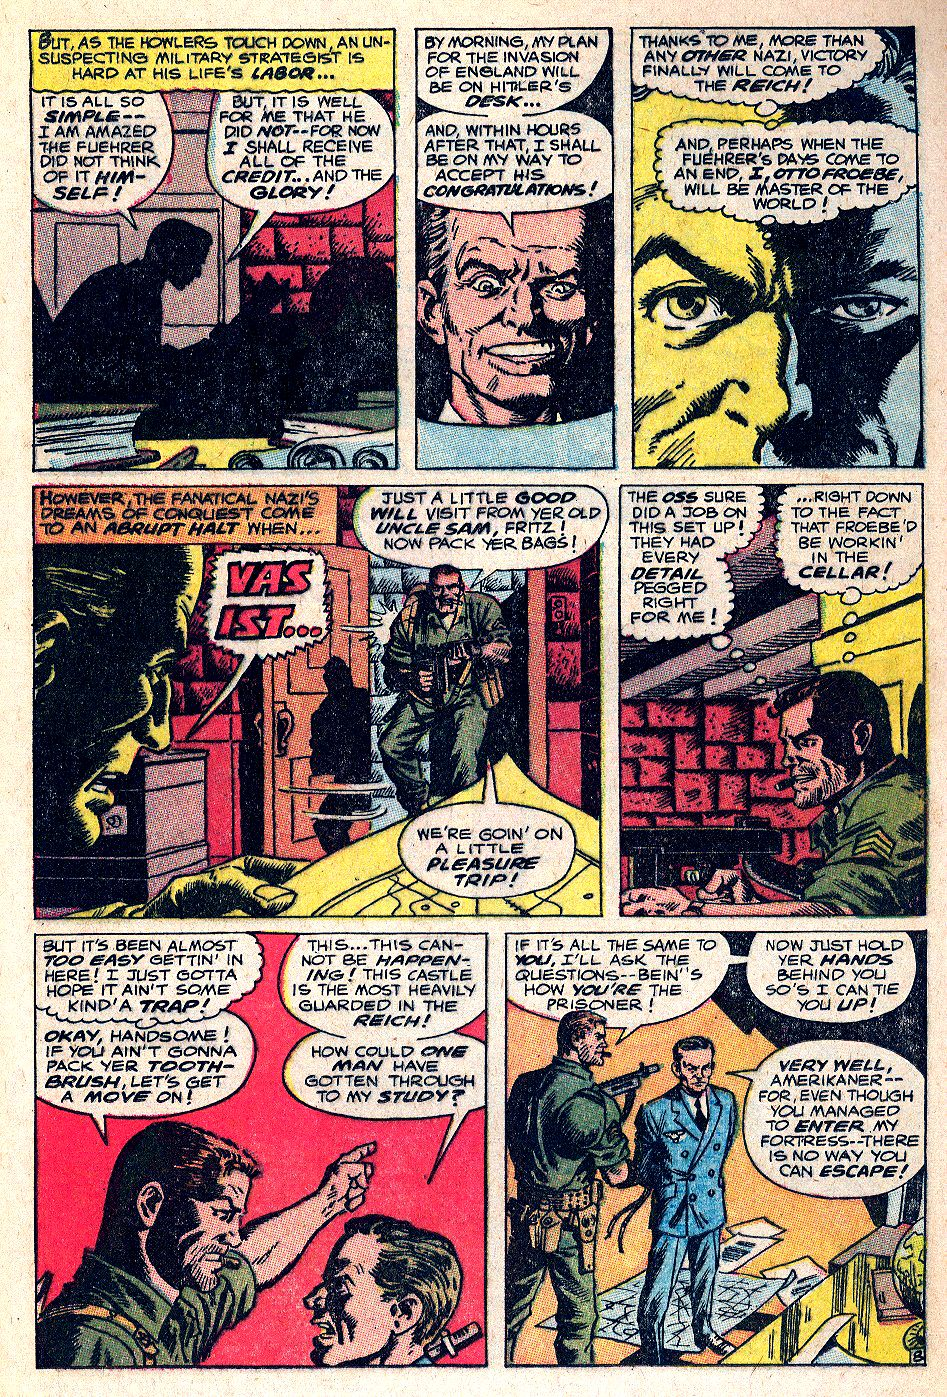 Read online Sgt. Fury comic -  Issue #53 - 13